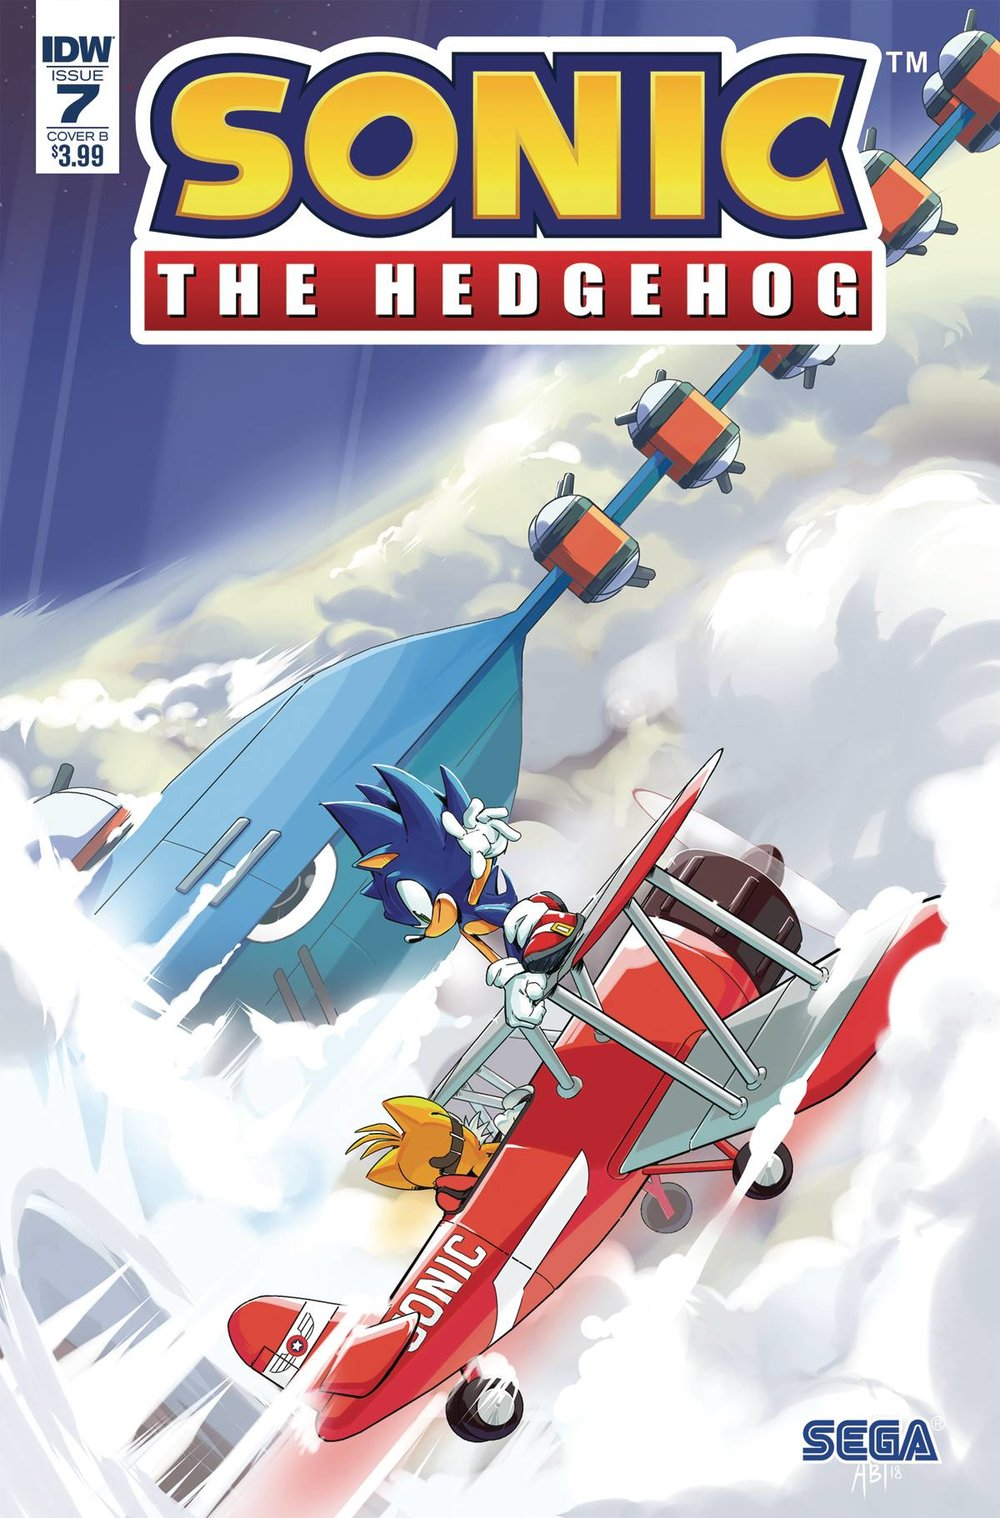 SONIC THE HEDGEHOG #7